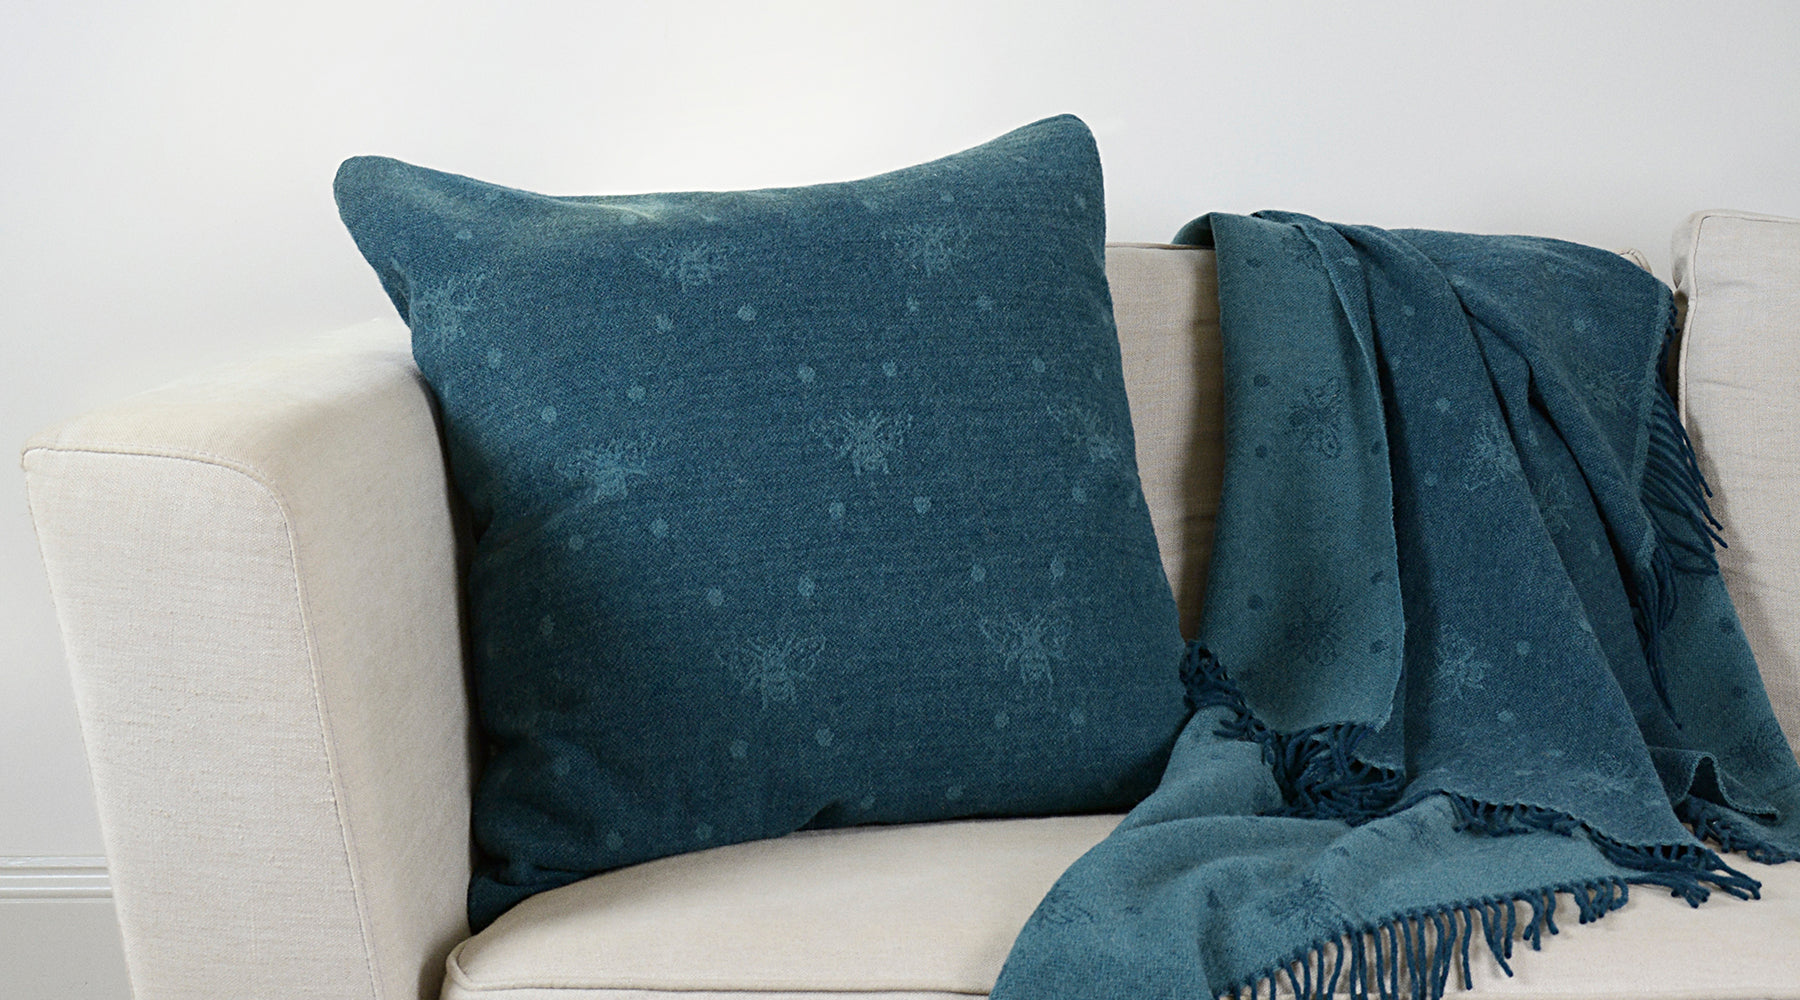 Cushions & Throws by Sophie Allport